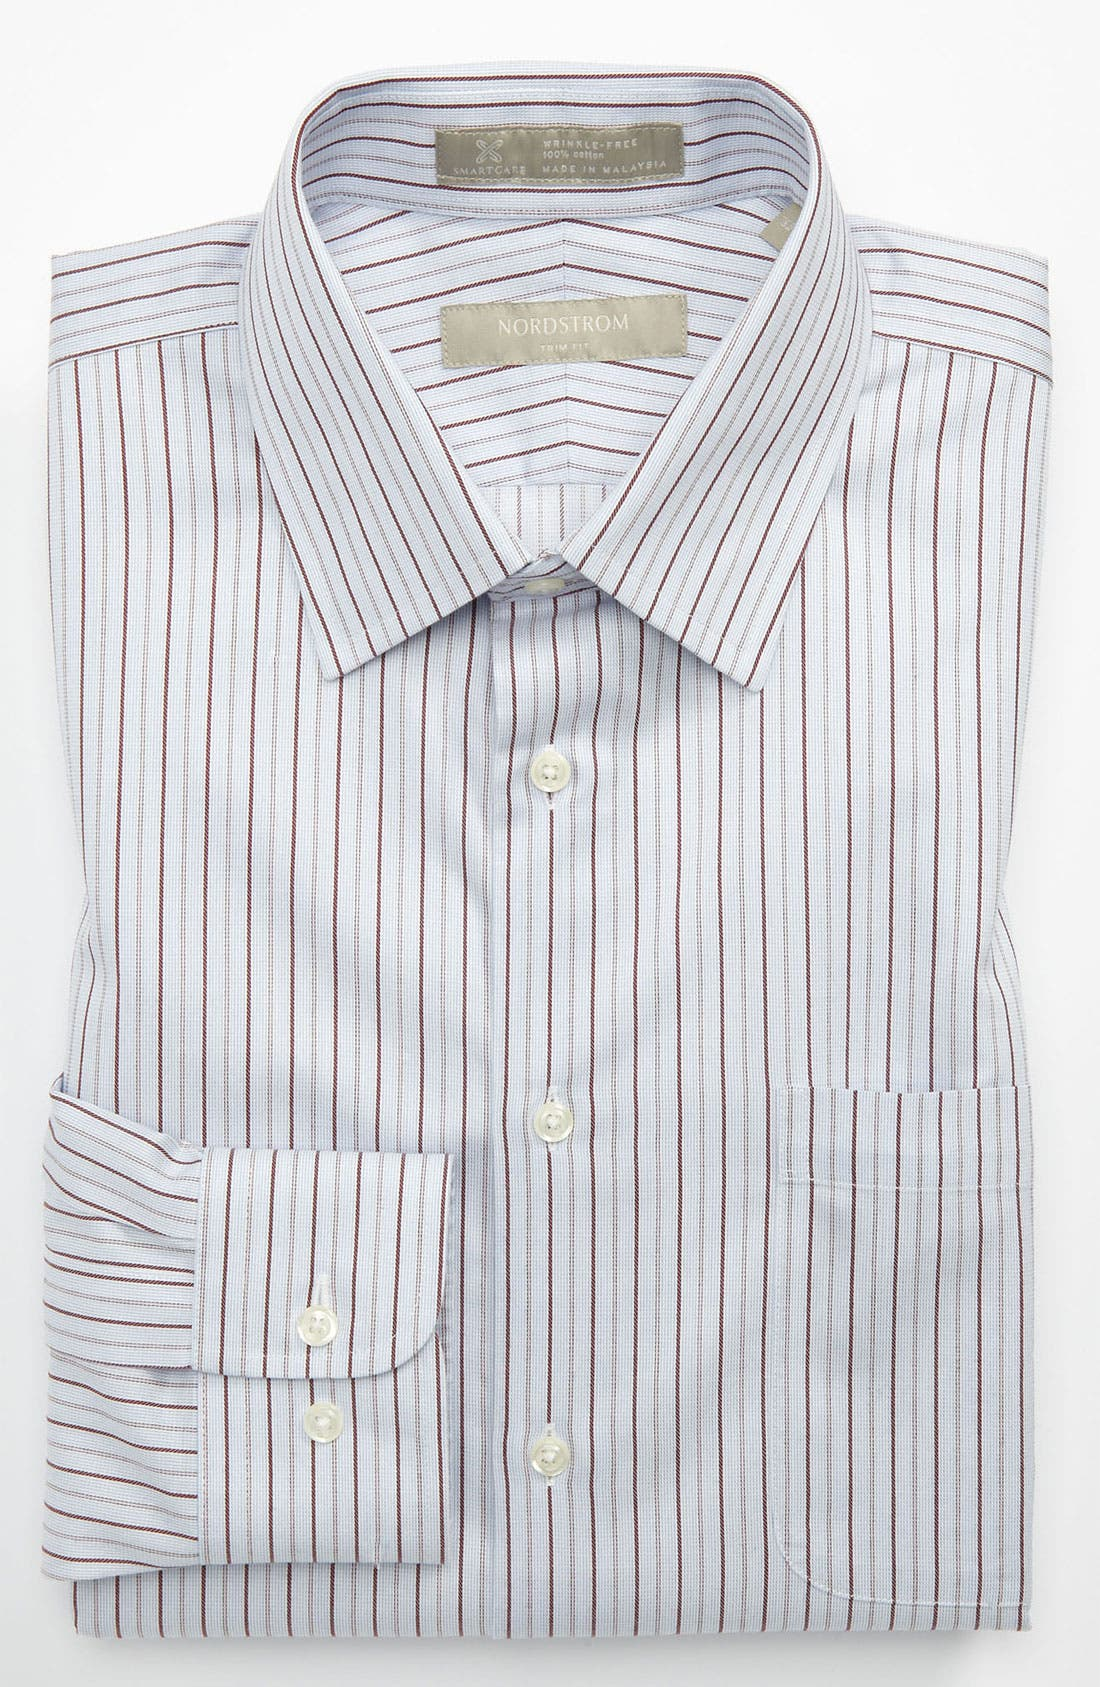 Alternate Image 1 Selected - Nordstrom Smartcare™ Trim Fit Dress Shirt